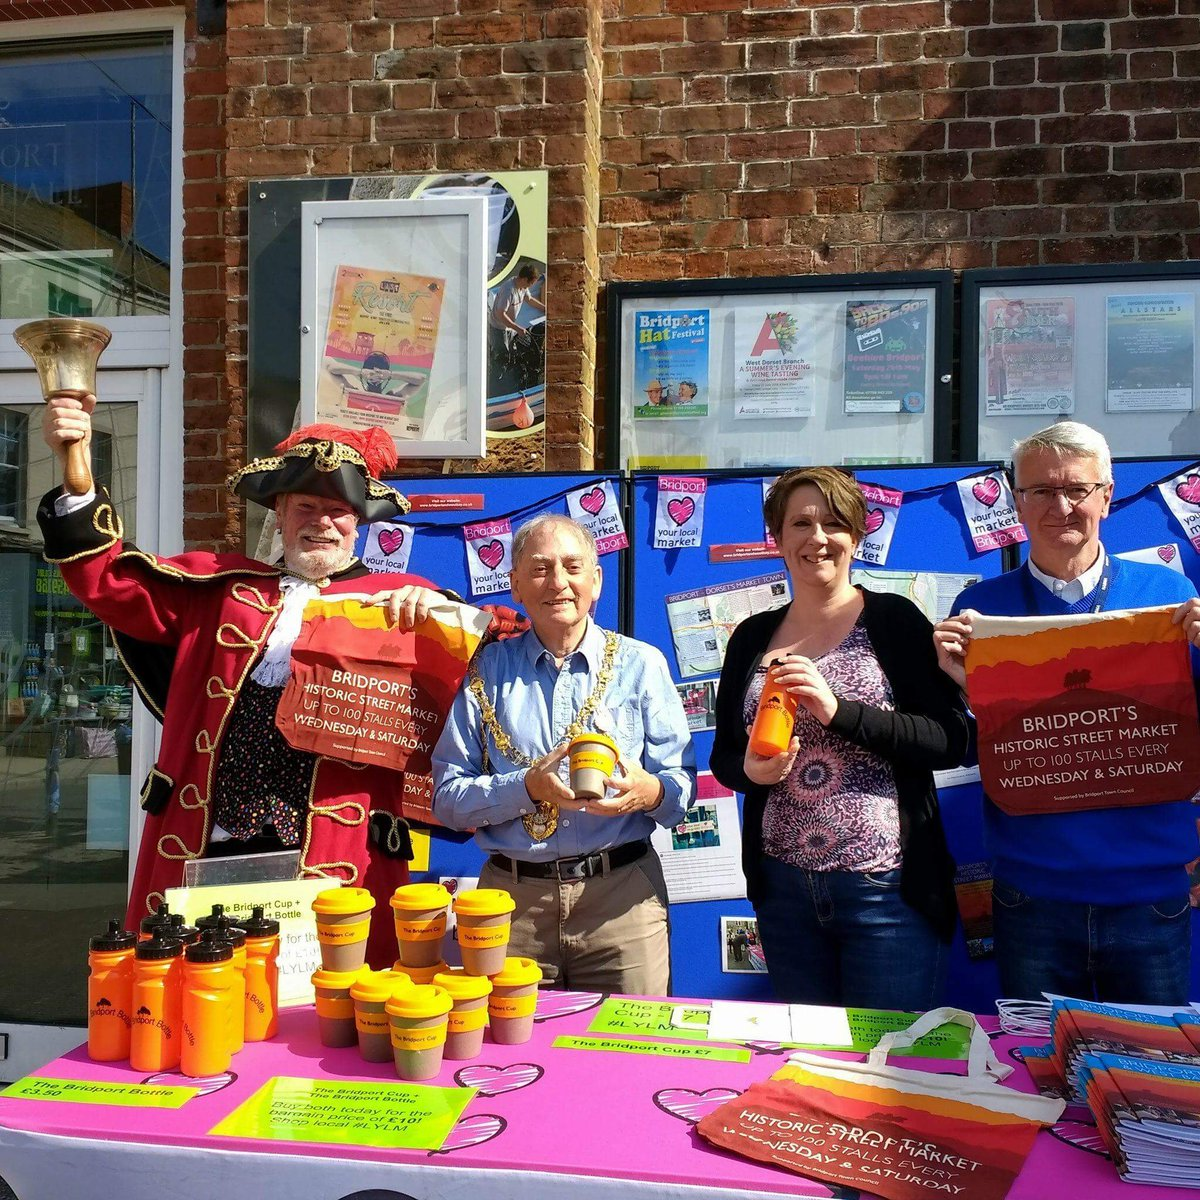 Our new Mayor's first official engagement launching Love Your Local Market fortnight! #Bridport #Market #LYLM2018